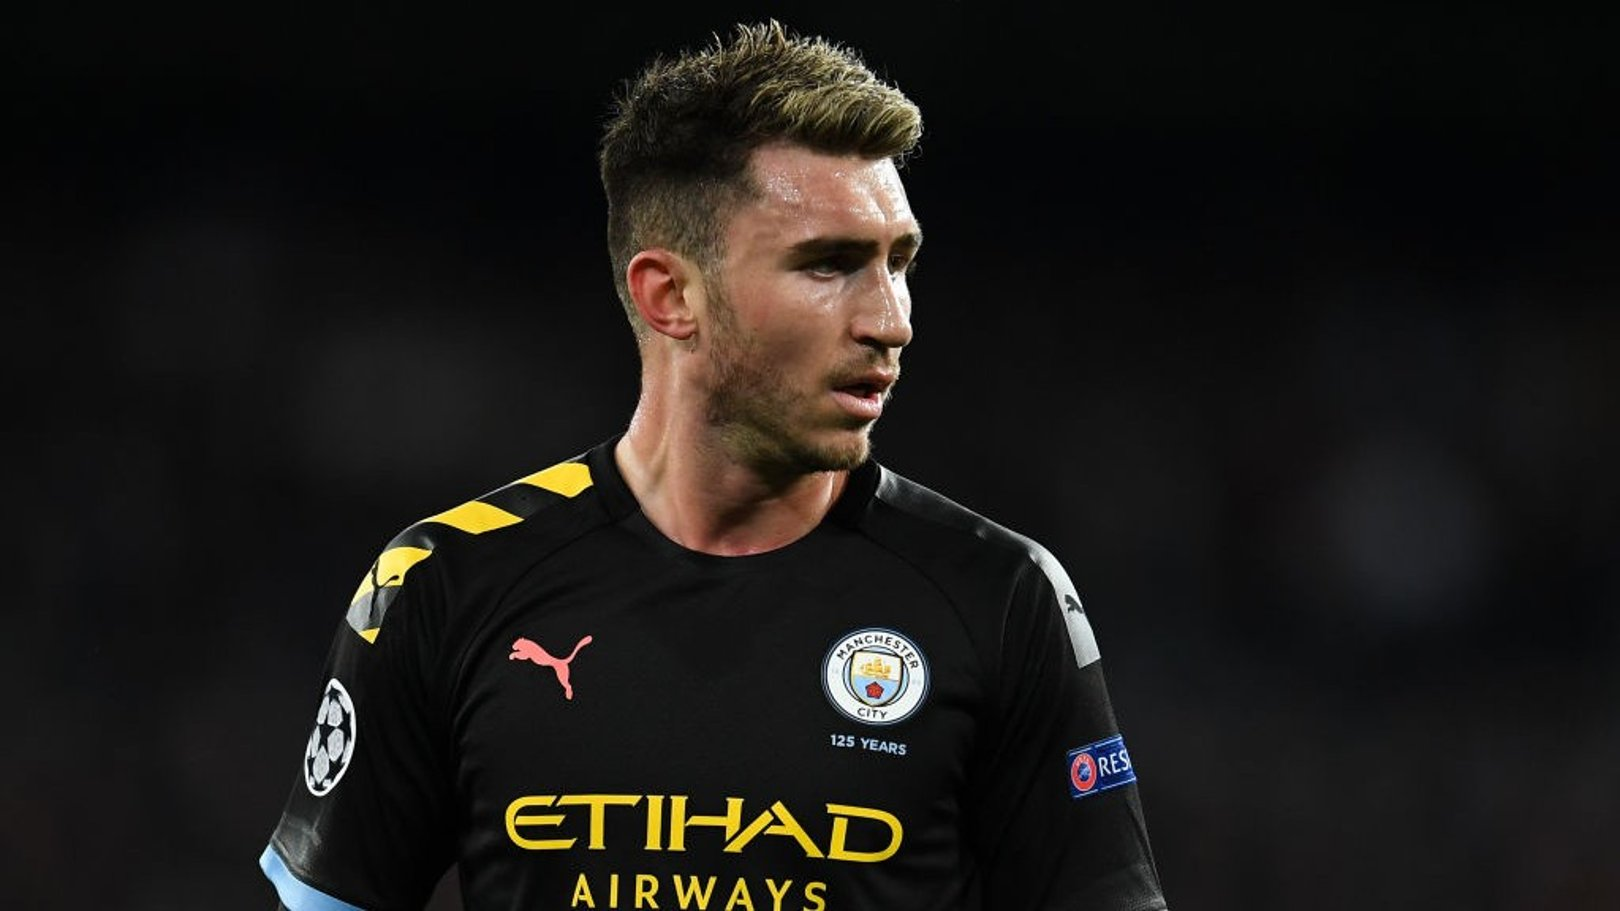 Laporte: I've adapted to the 'new normal' of lockdown